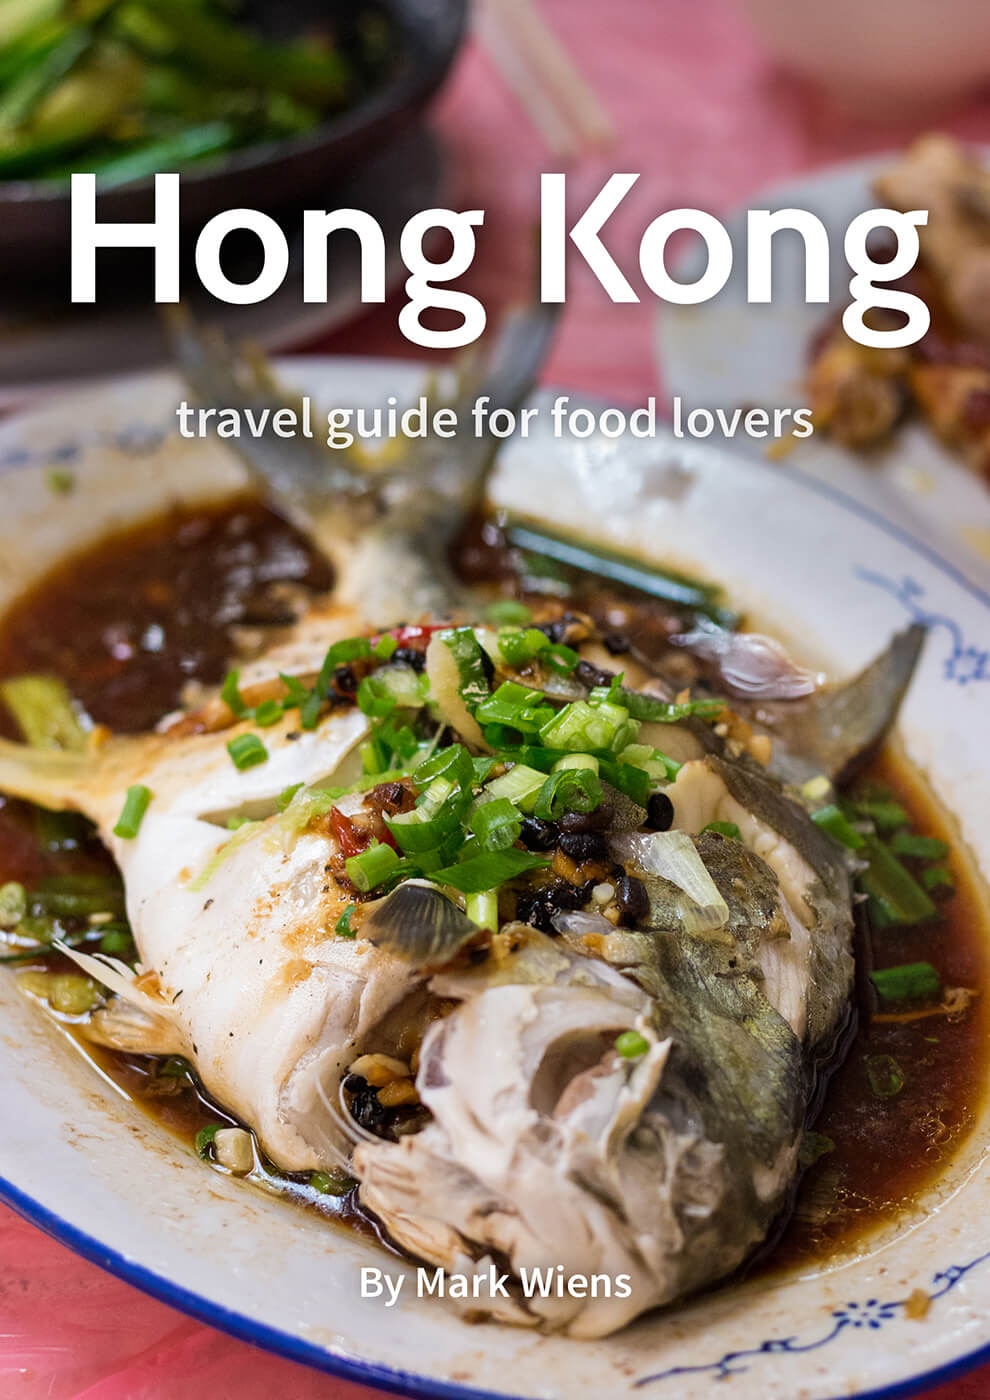 You'll discover where to stay, things to do, and delicious food you don't want to miss, all in this Hong Kong Travel Guide for Food Lovers!